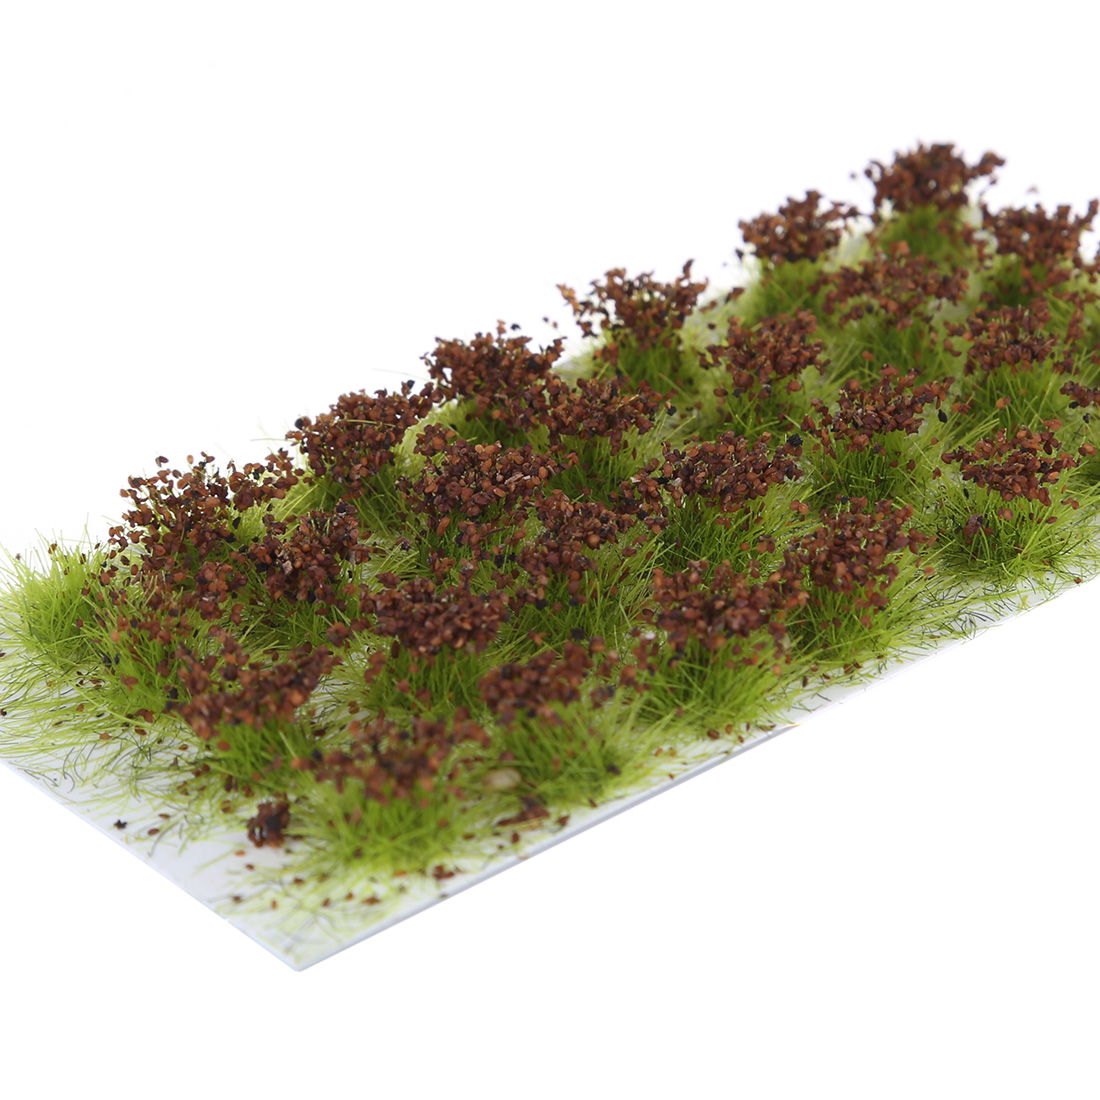 28Pcs Simulation Flower Cluster Flowers Scene Model For 1:35/1:48/1:72/1:87 Scale Sand Table  Miniatures Landscape - Rose